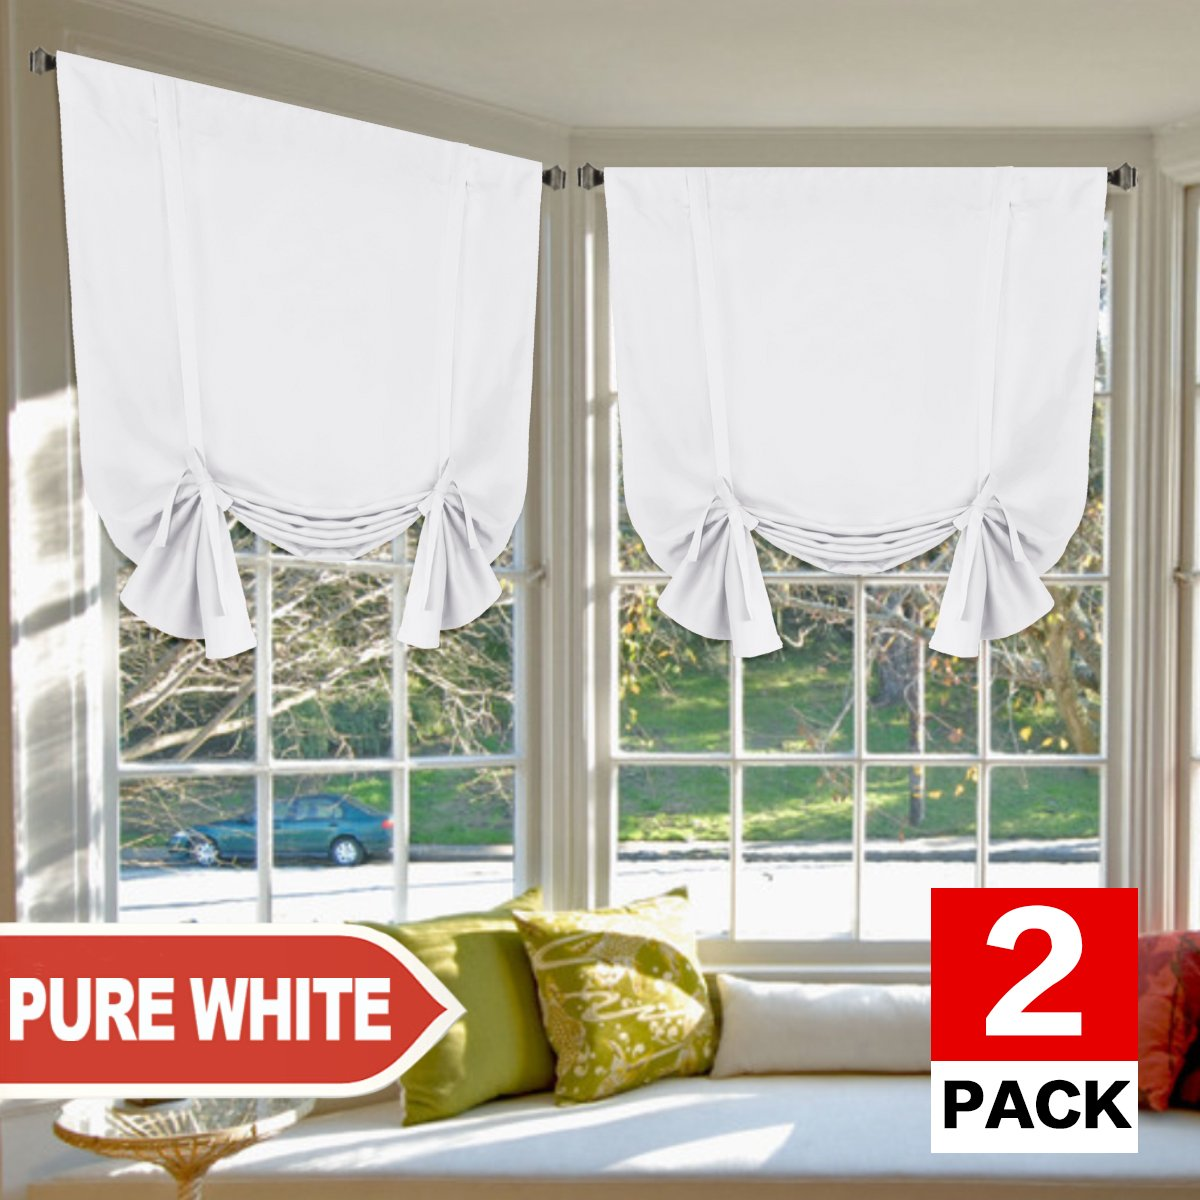 """H.VERSAILTEX Pure White Curtains Thermal Insulated Tie Up Window Shade Light Reducing Curtains for Kitchen, Rod Pocket 2 Panels- 42"""" Wide by 63"""" Long"""